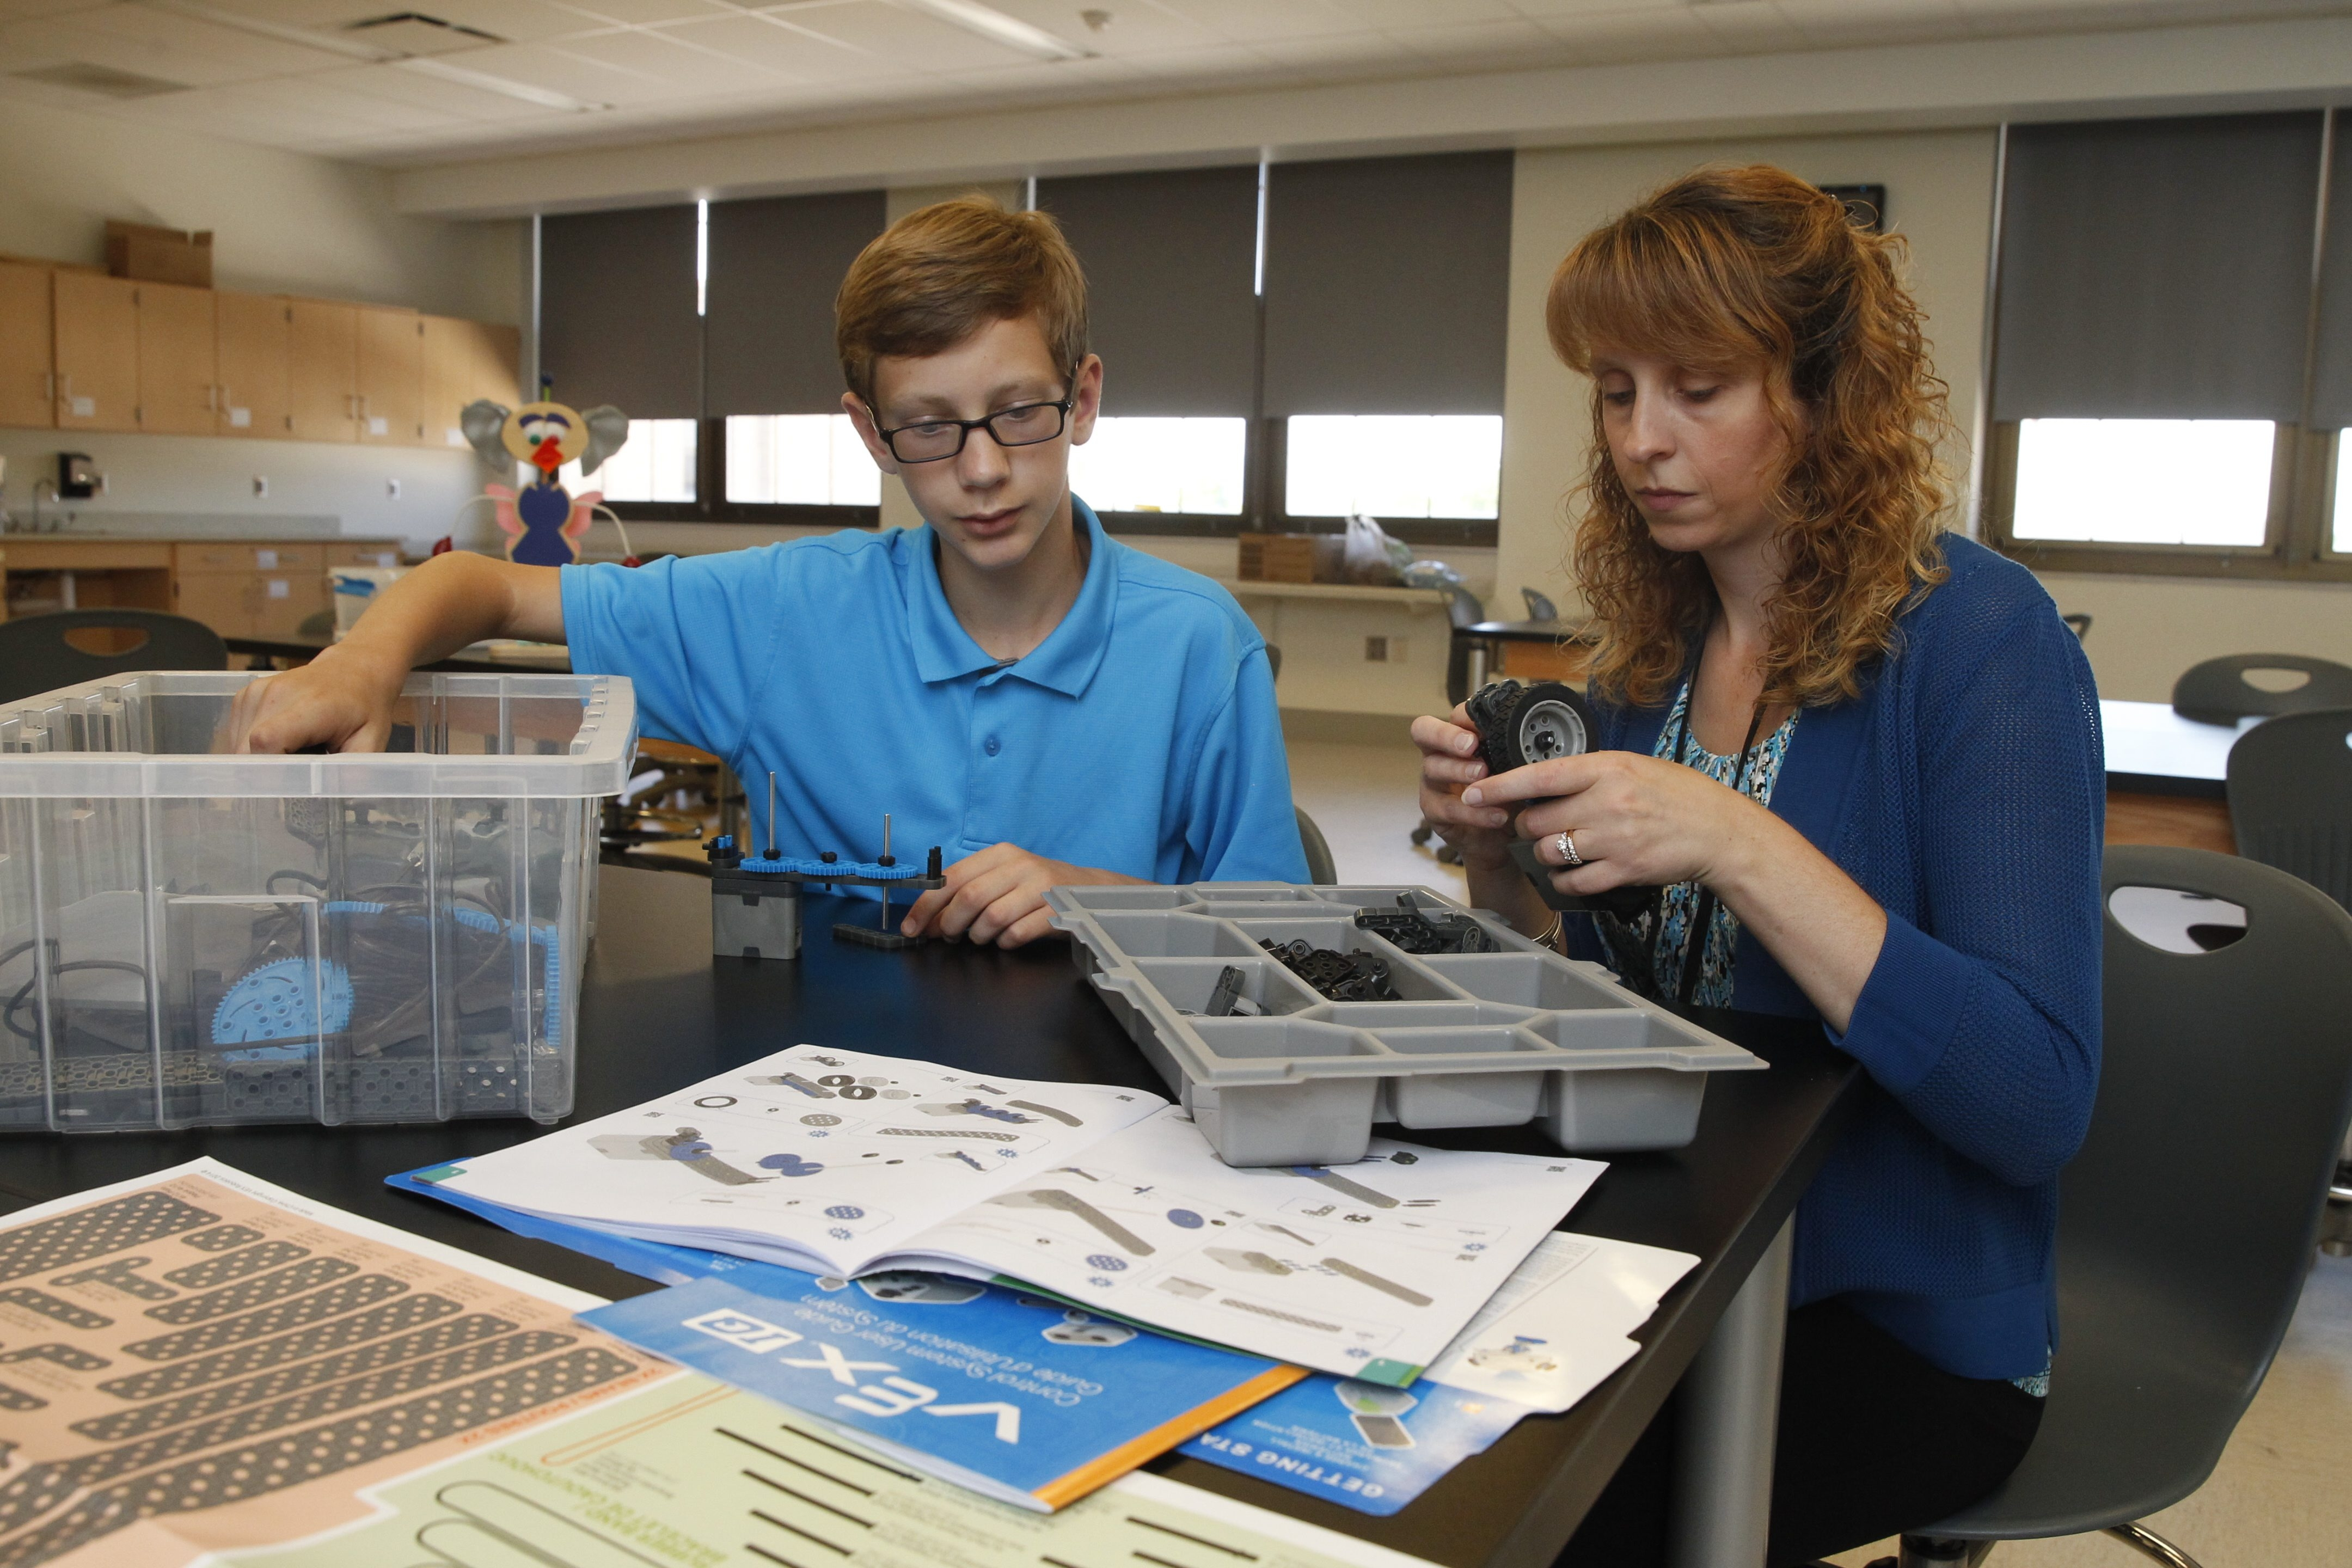 Ronni McGrath, right, works with student Jacob Mosholder, 13, on a science project at Gaskill Preparatory School in Niagara Falls. Students from three Falls schools will be participating in the Student Spaceflight Experiments Program in the fall.